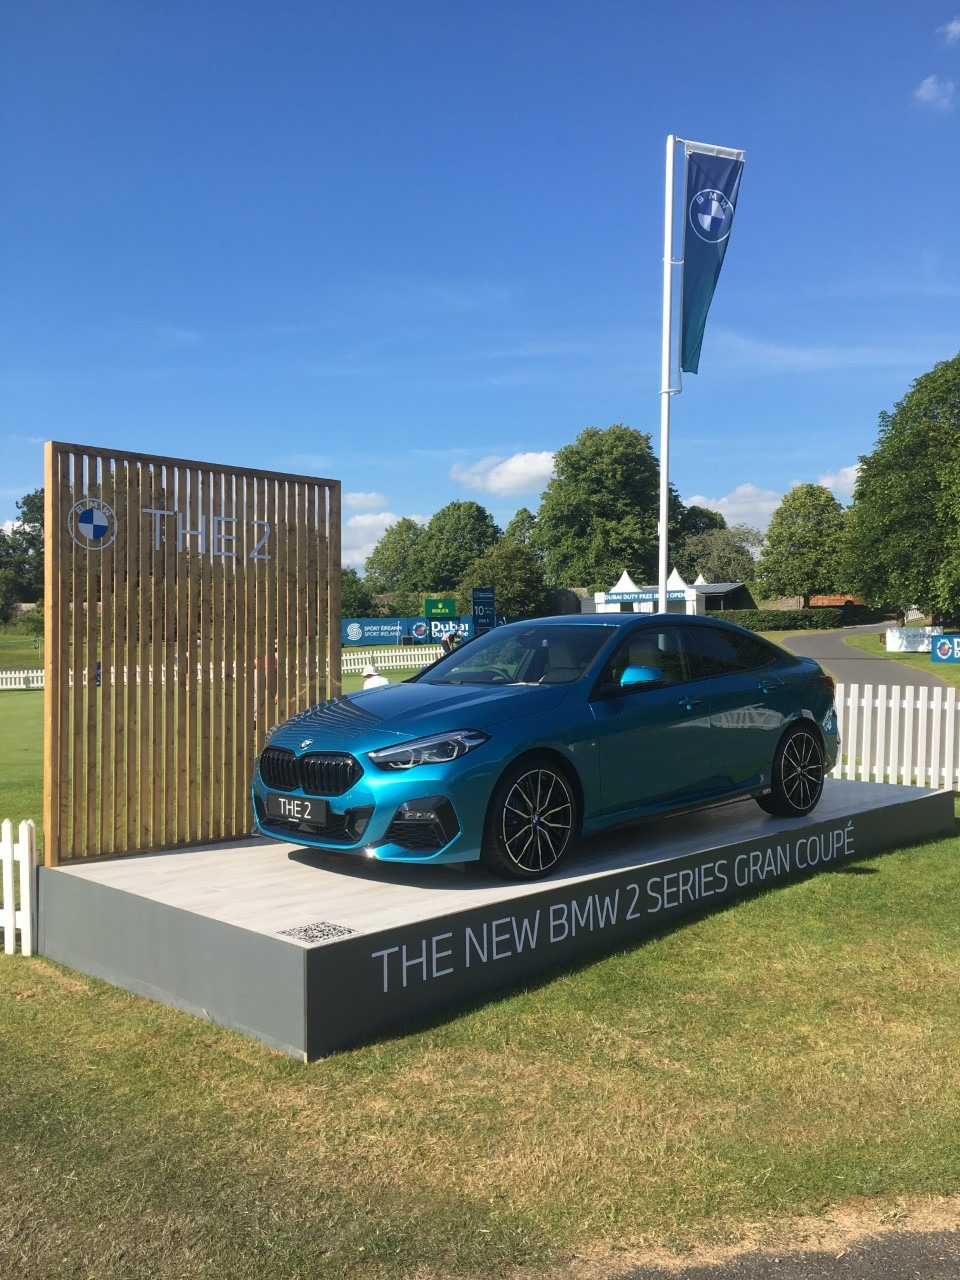 Image of a 2 Series Gran Coupe at the Irish Open